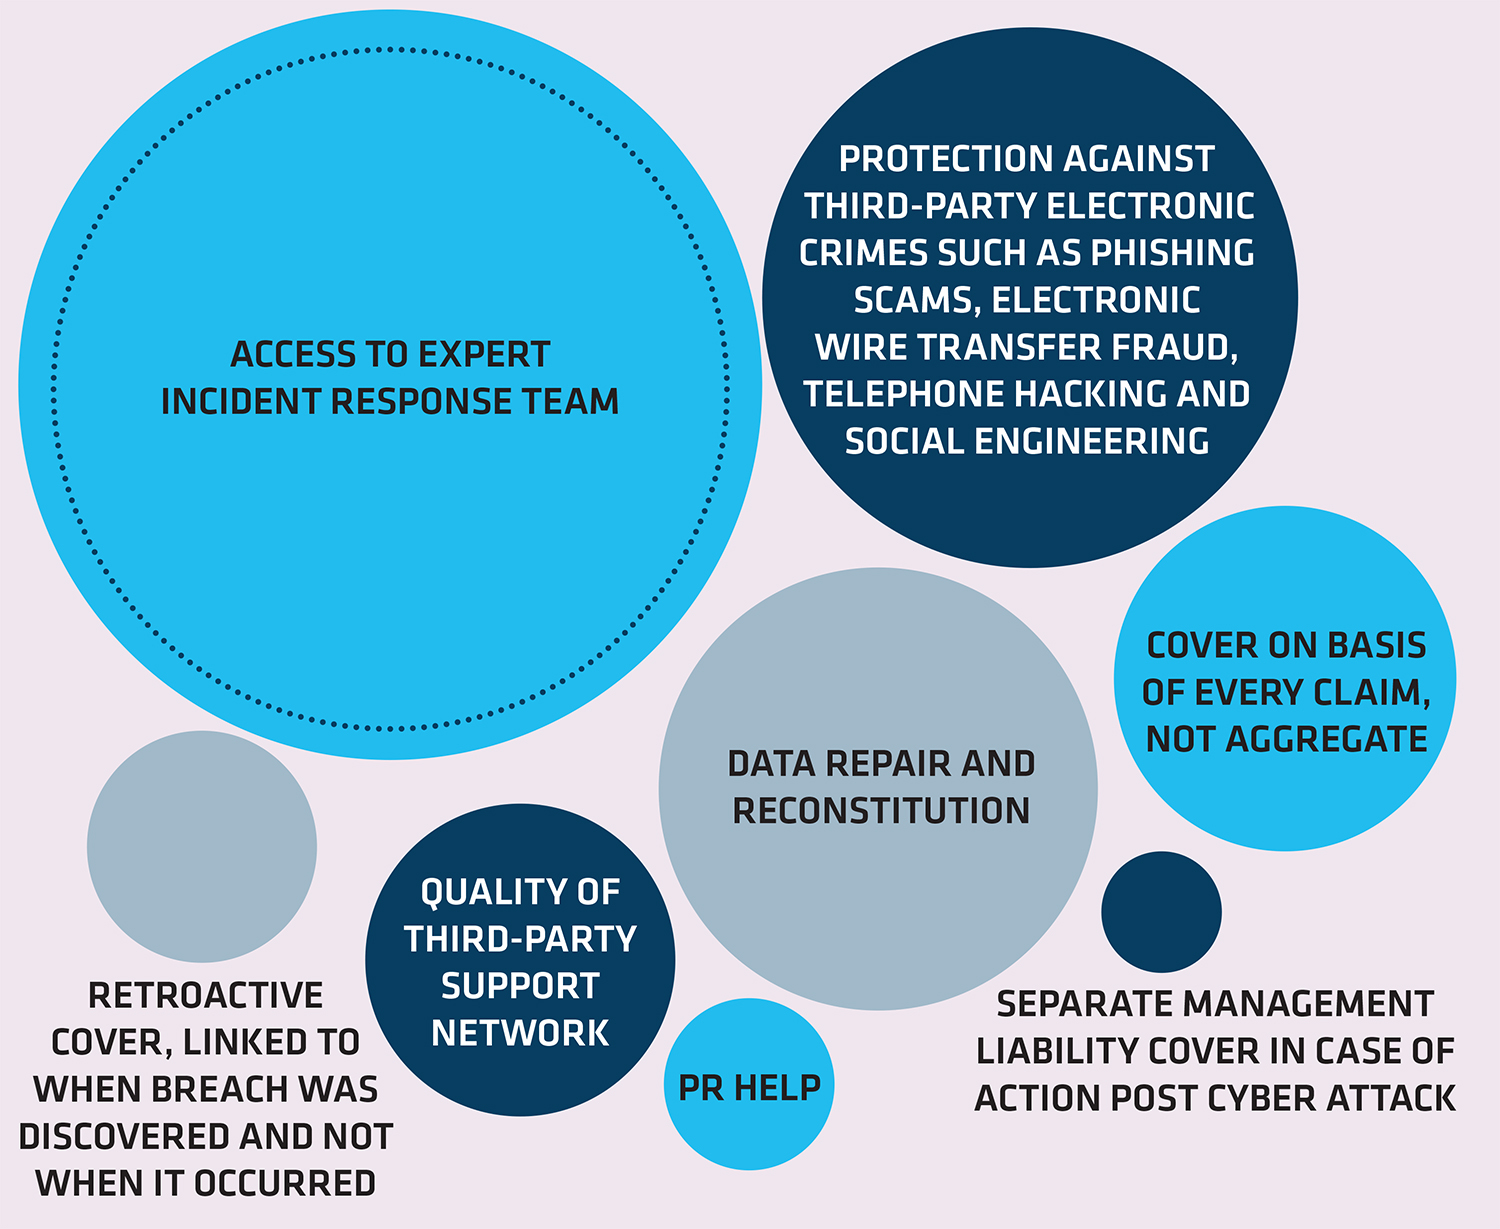 7 THE MOST IMPORTANT FACTORS FOR A CYBER POLICY